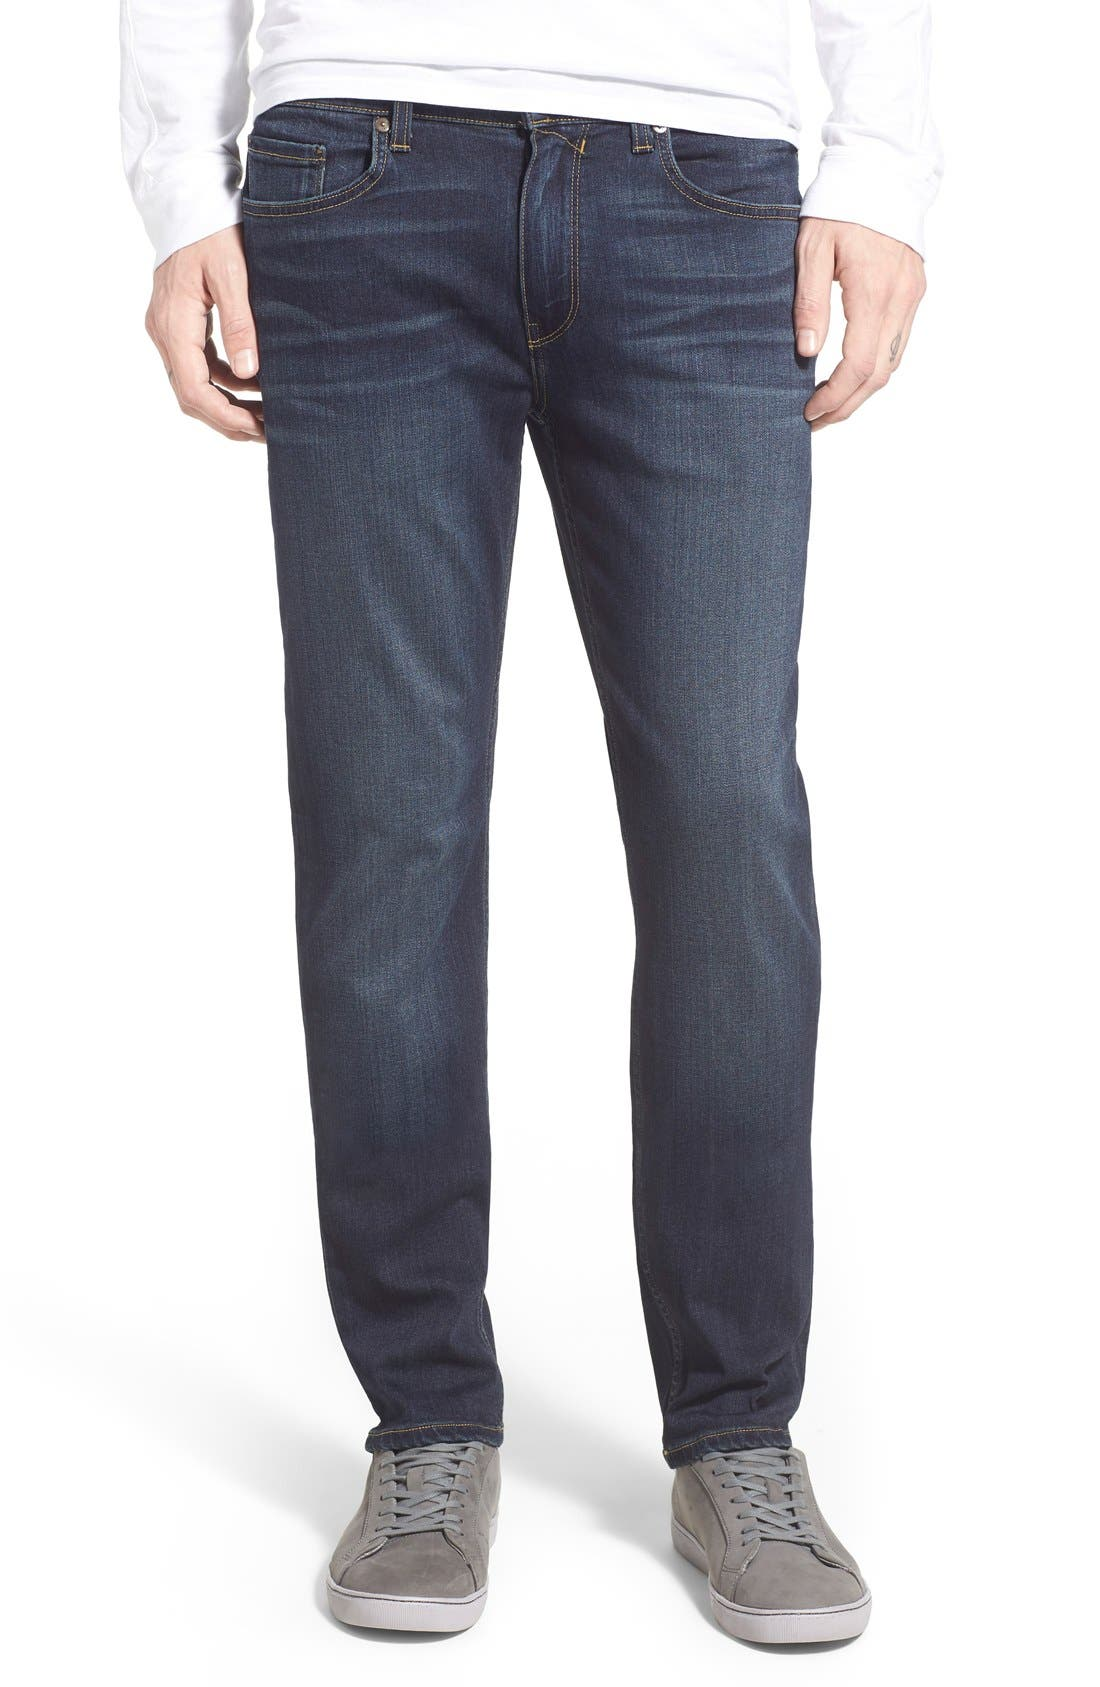 PAIGE, Lennox Slim Fit Jeans, Main thumbnail 1, color, RIGBY